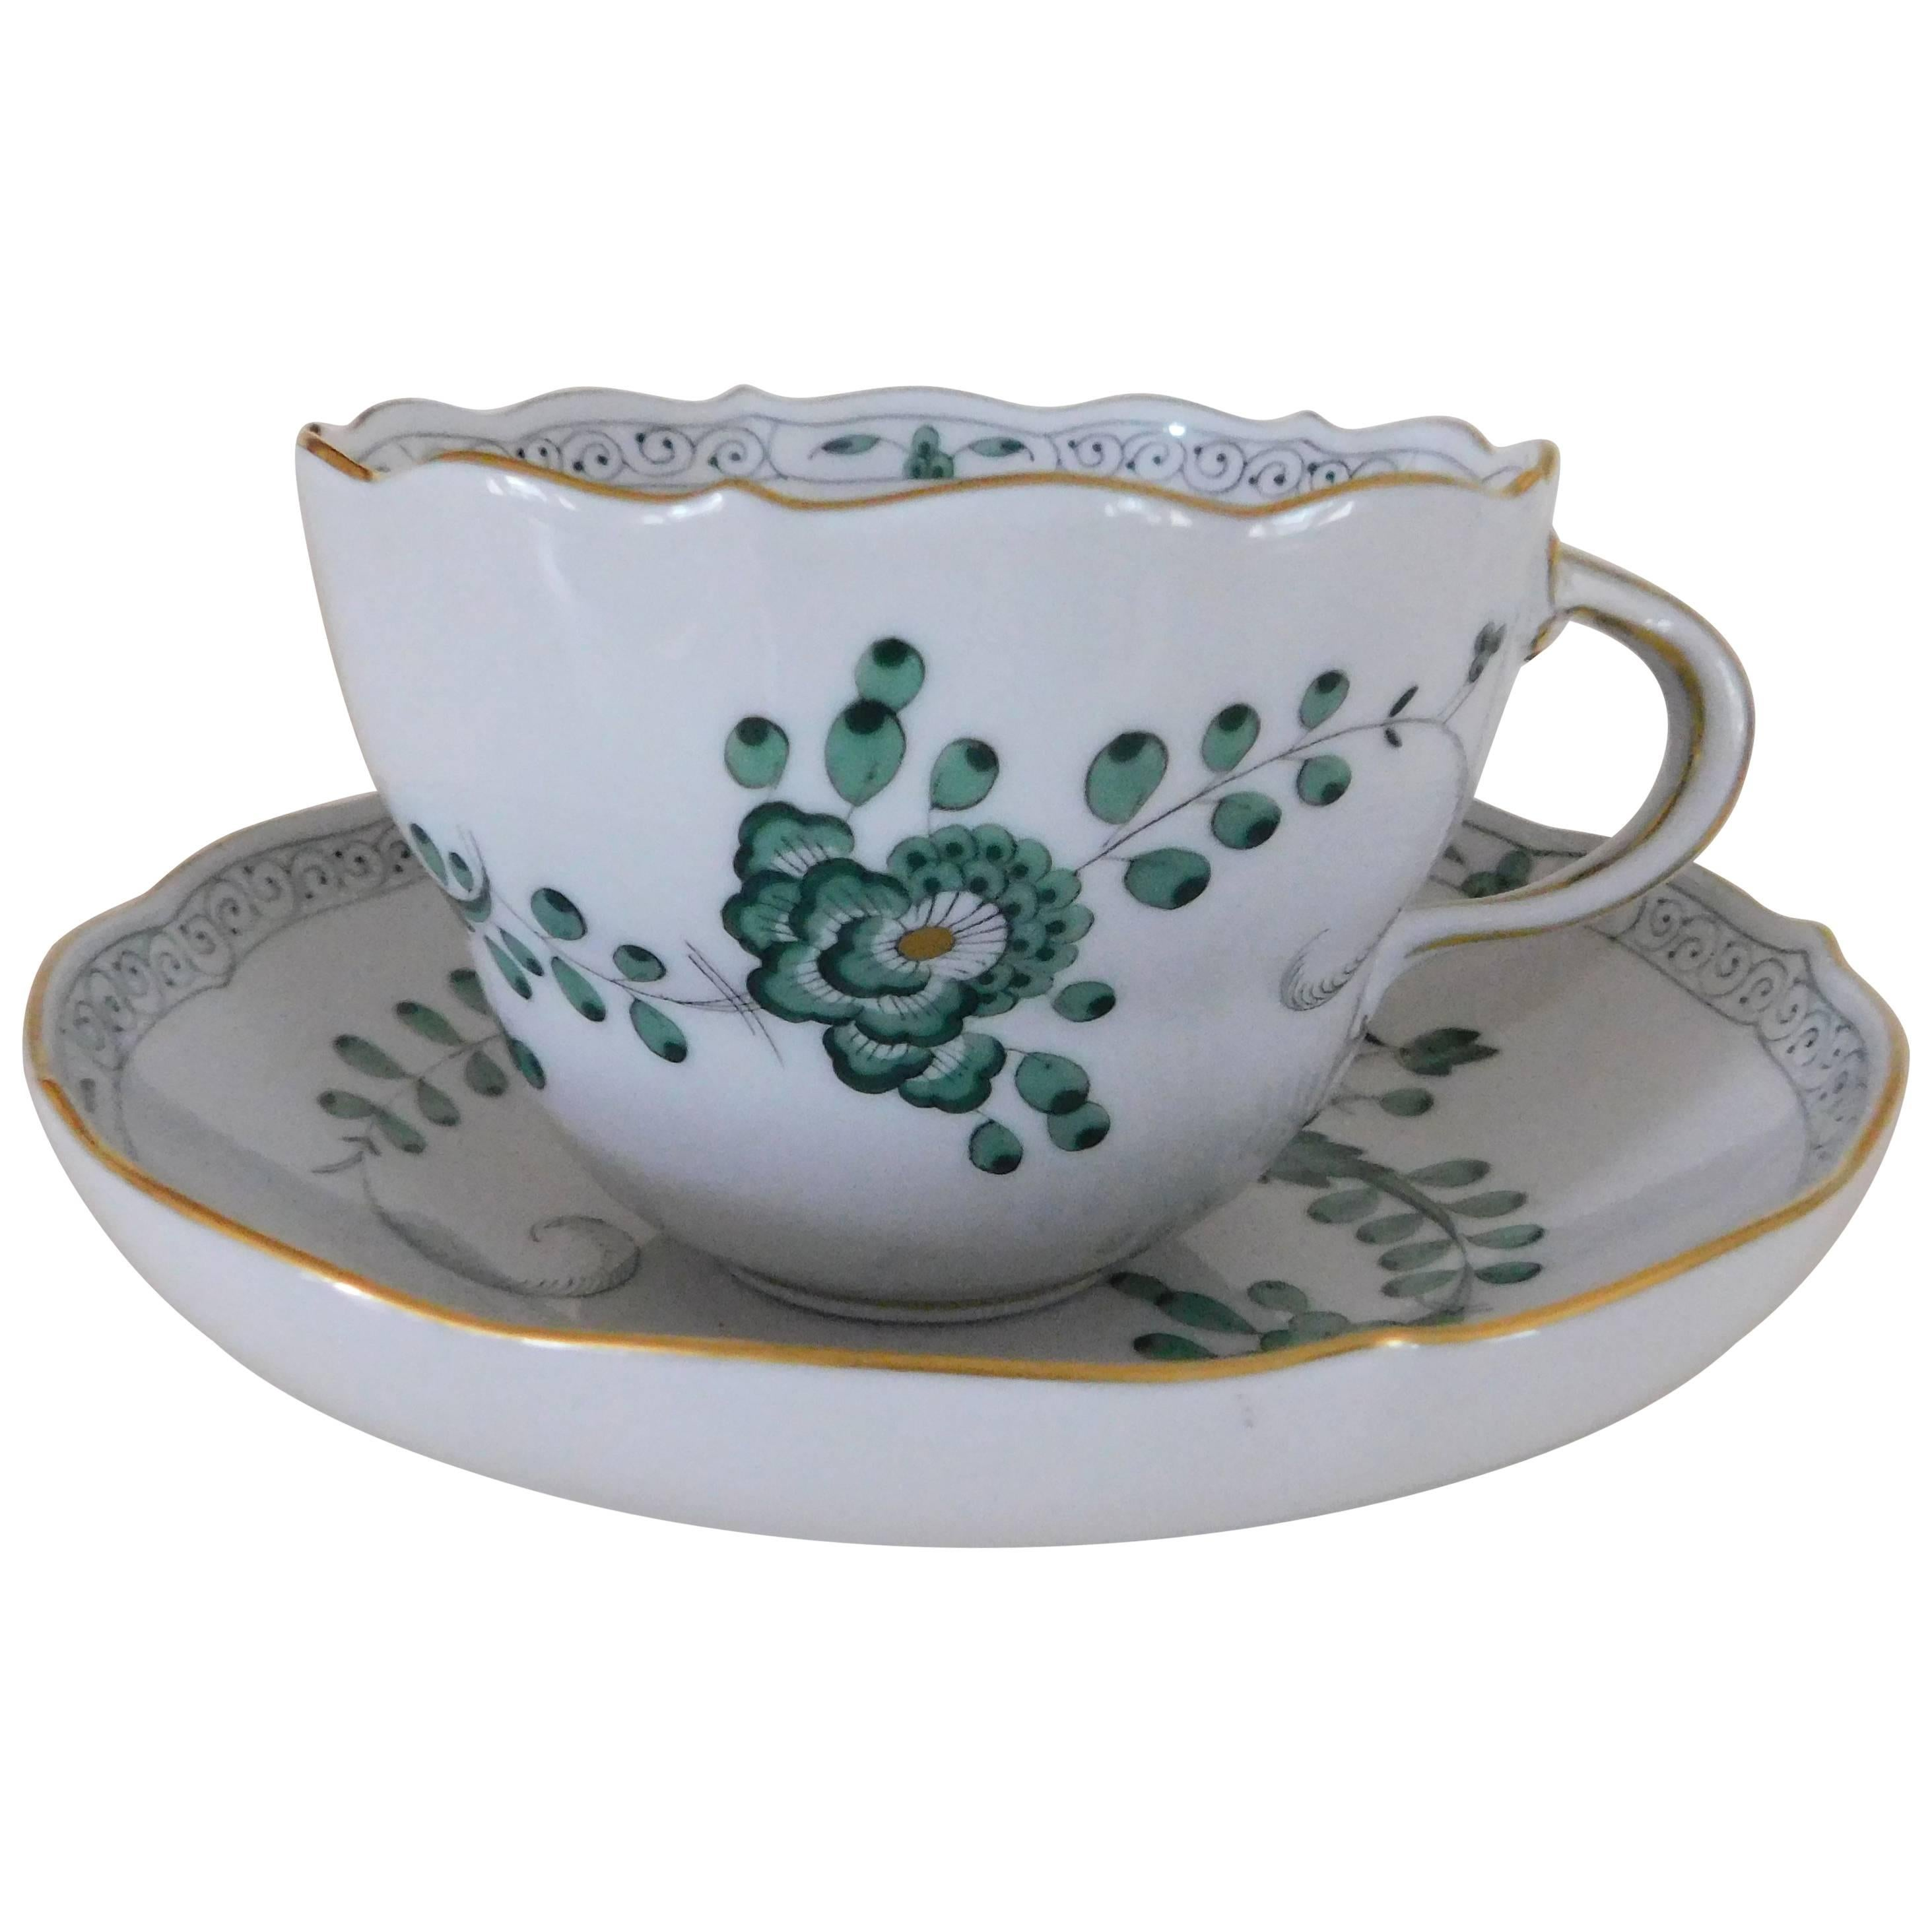 Meissen Porcelain Green Indian Flowers Large Cup and Saucer, 20th Century